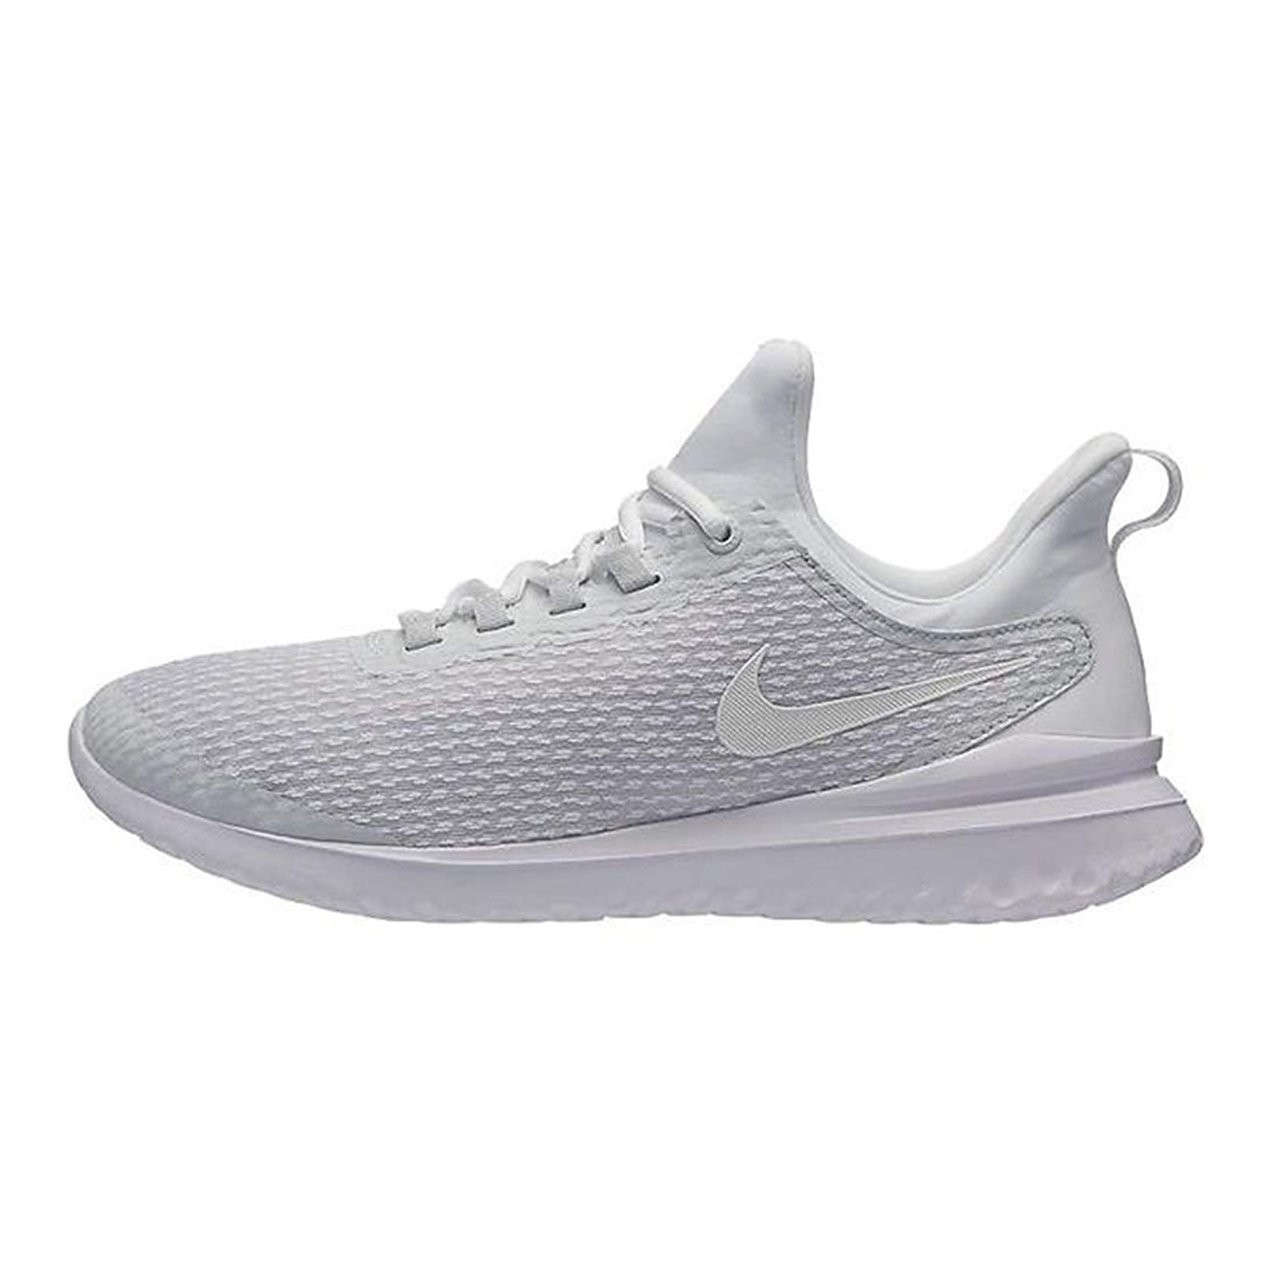 f7562f7a992 Galleon - NIKE Men s Renew Rival Running Shoe Pure Platinum White (10.5)